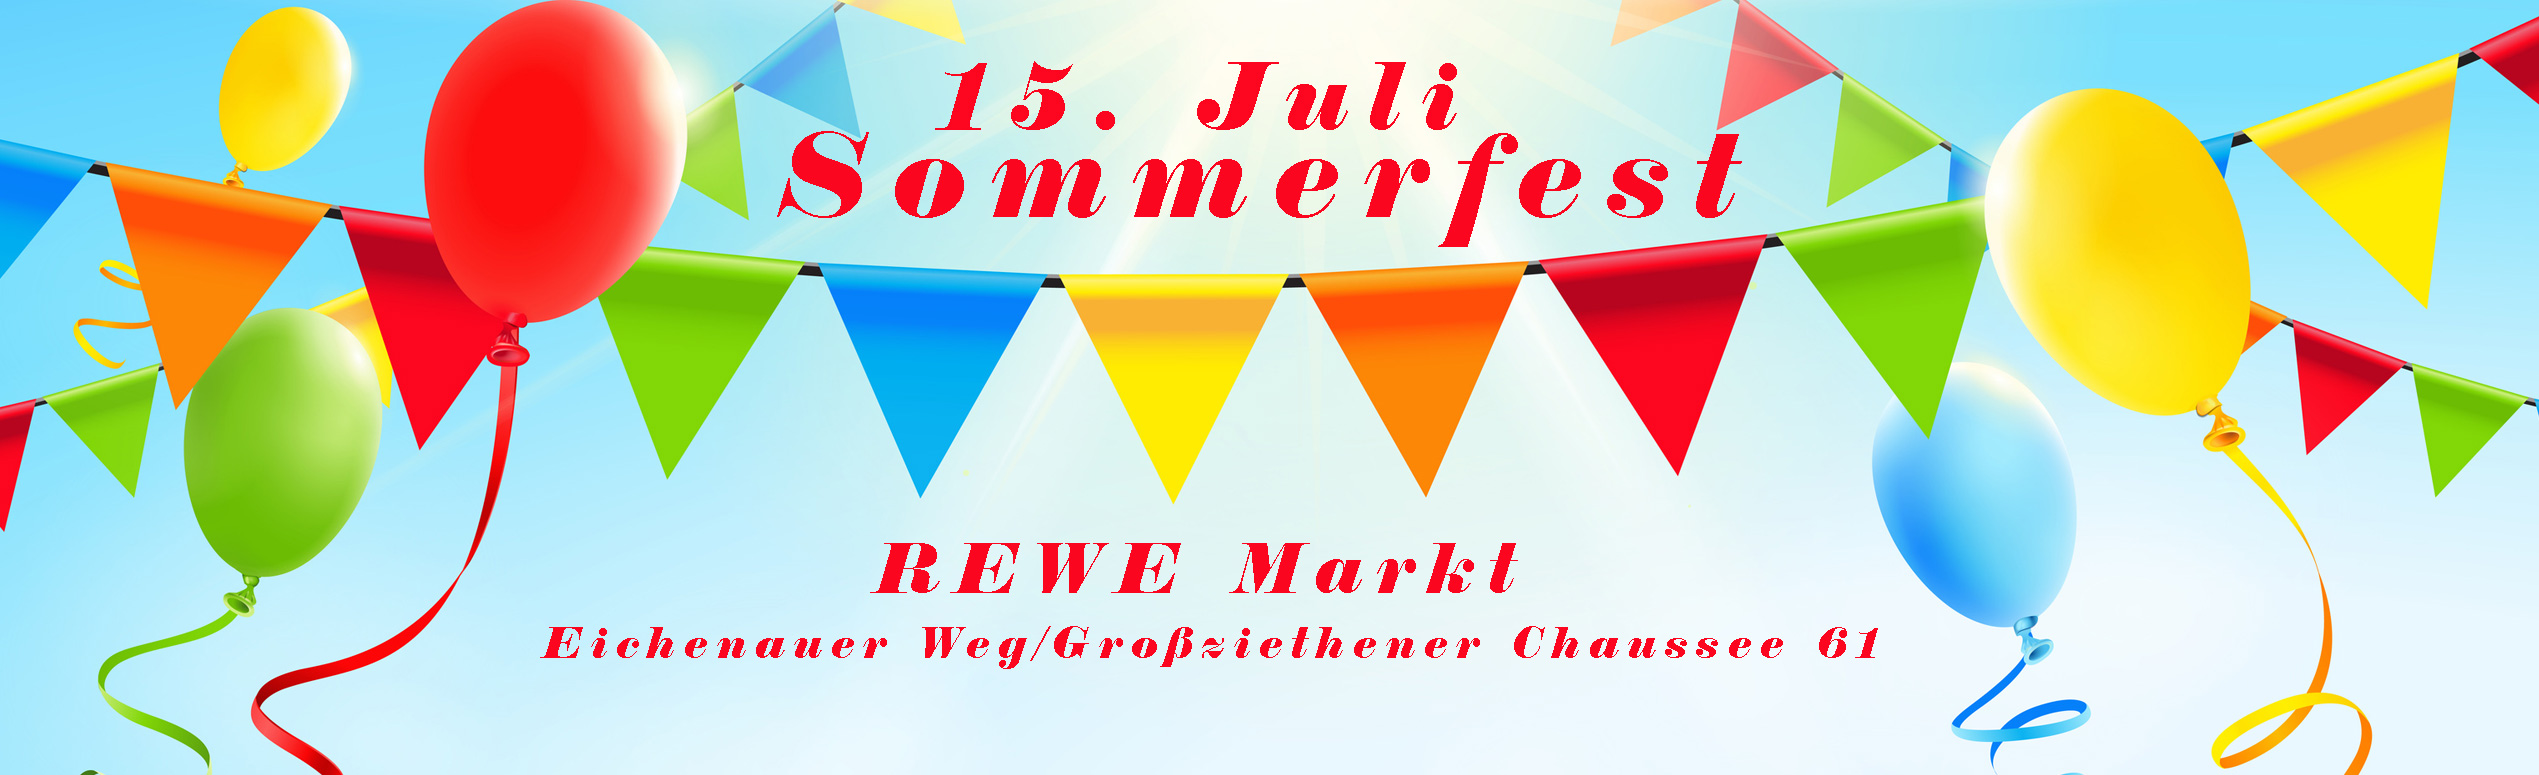 Web_Banner_1904x581px_2017_REWESommerfest